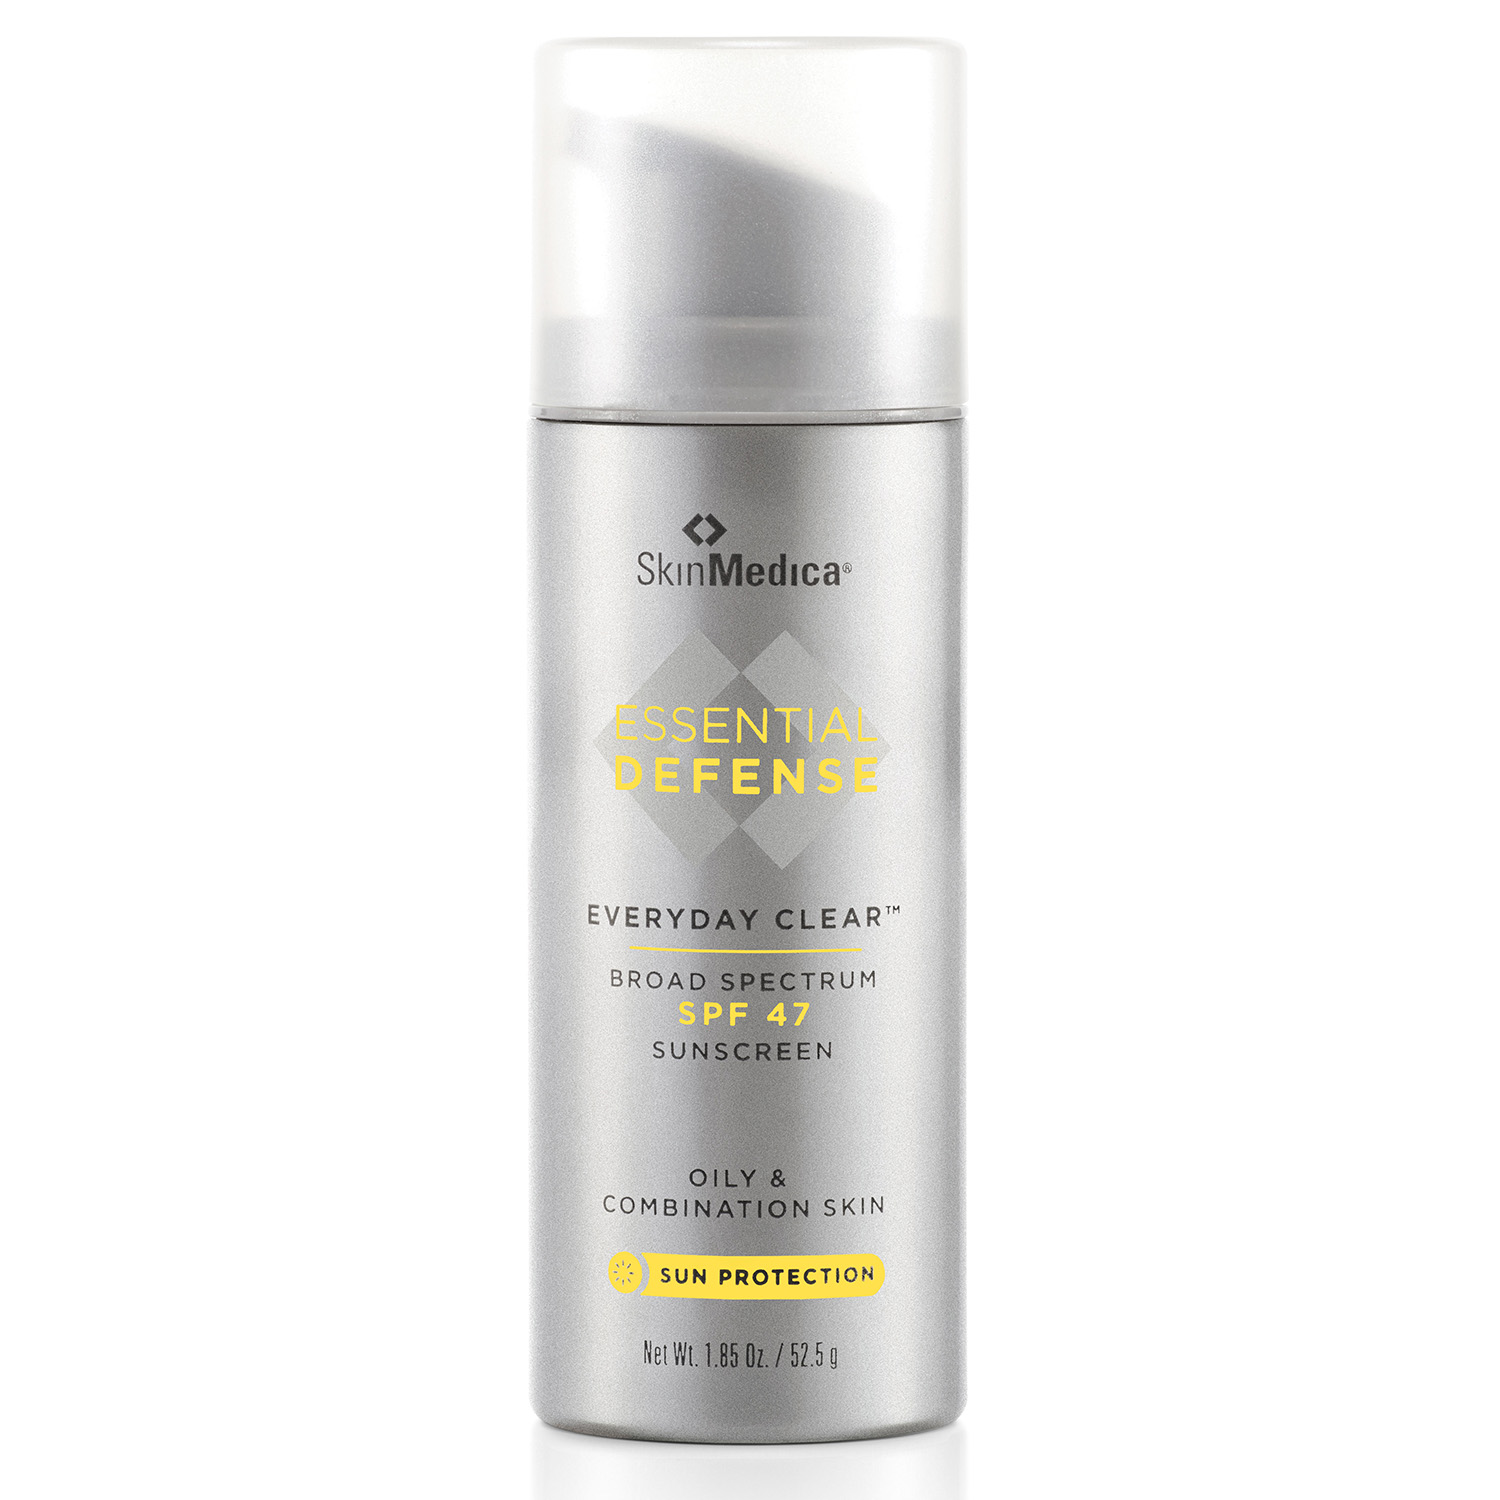 SkinMedica ESSENTIAL DEFENSE EVERYDAY CLEAR BROAD SPECTRUM SPF 47 (SUN PROTECTION) (1.85 oz / 52.5 g)